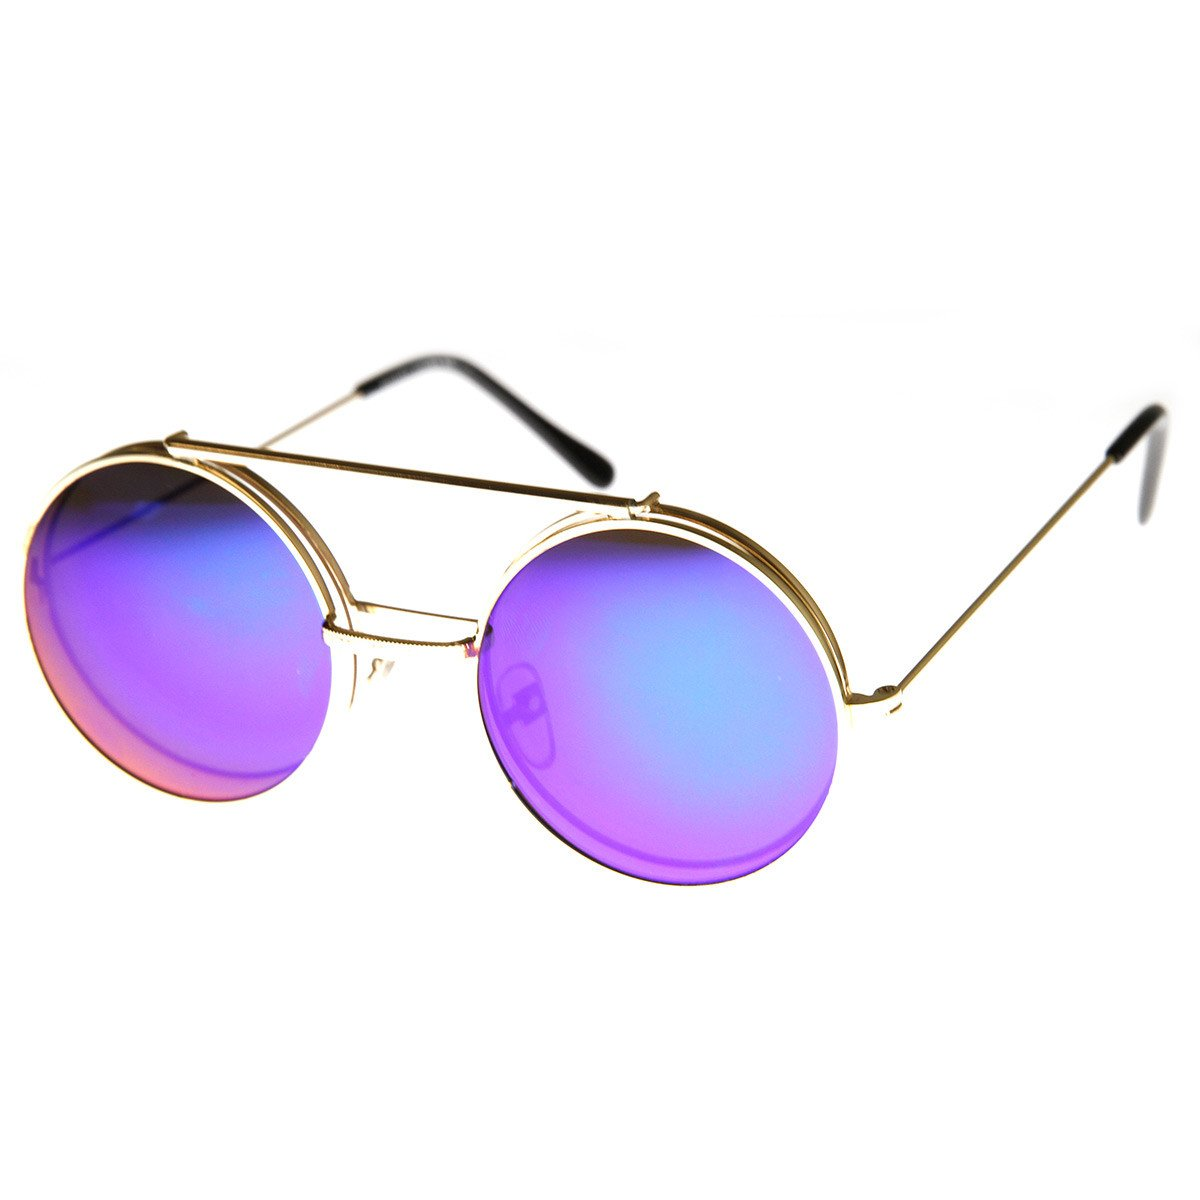 310c386b21f Retro Round Circle Steampunk Flip Up Revo Sunglasses - zeroUV